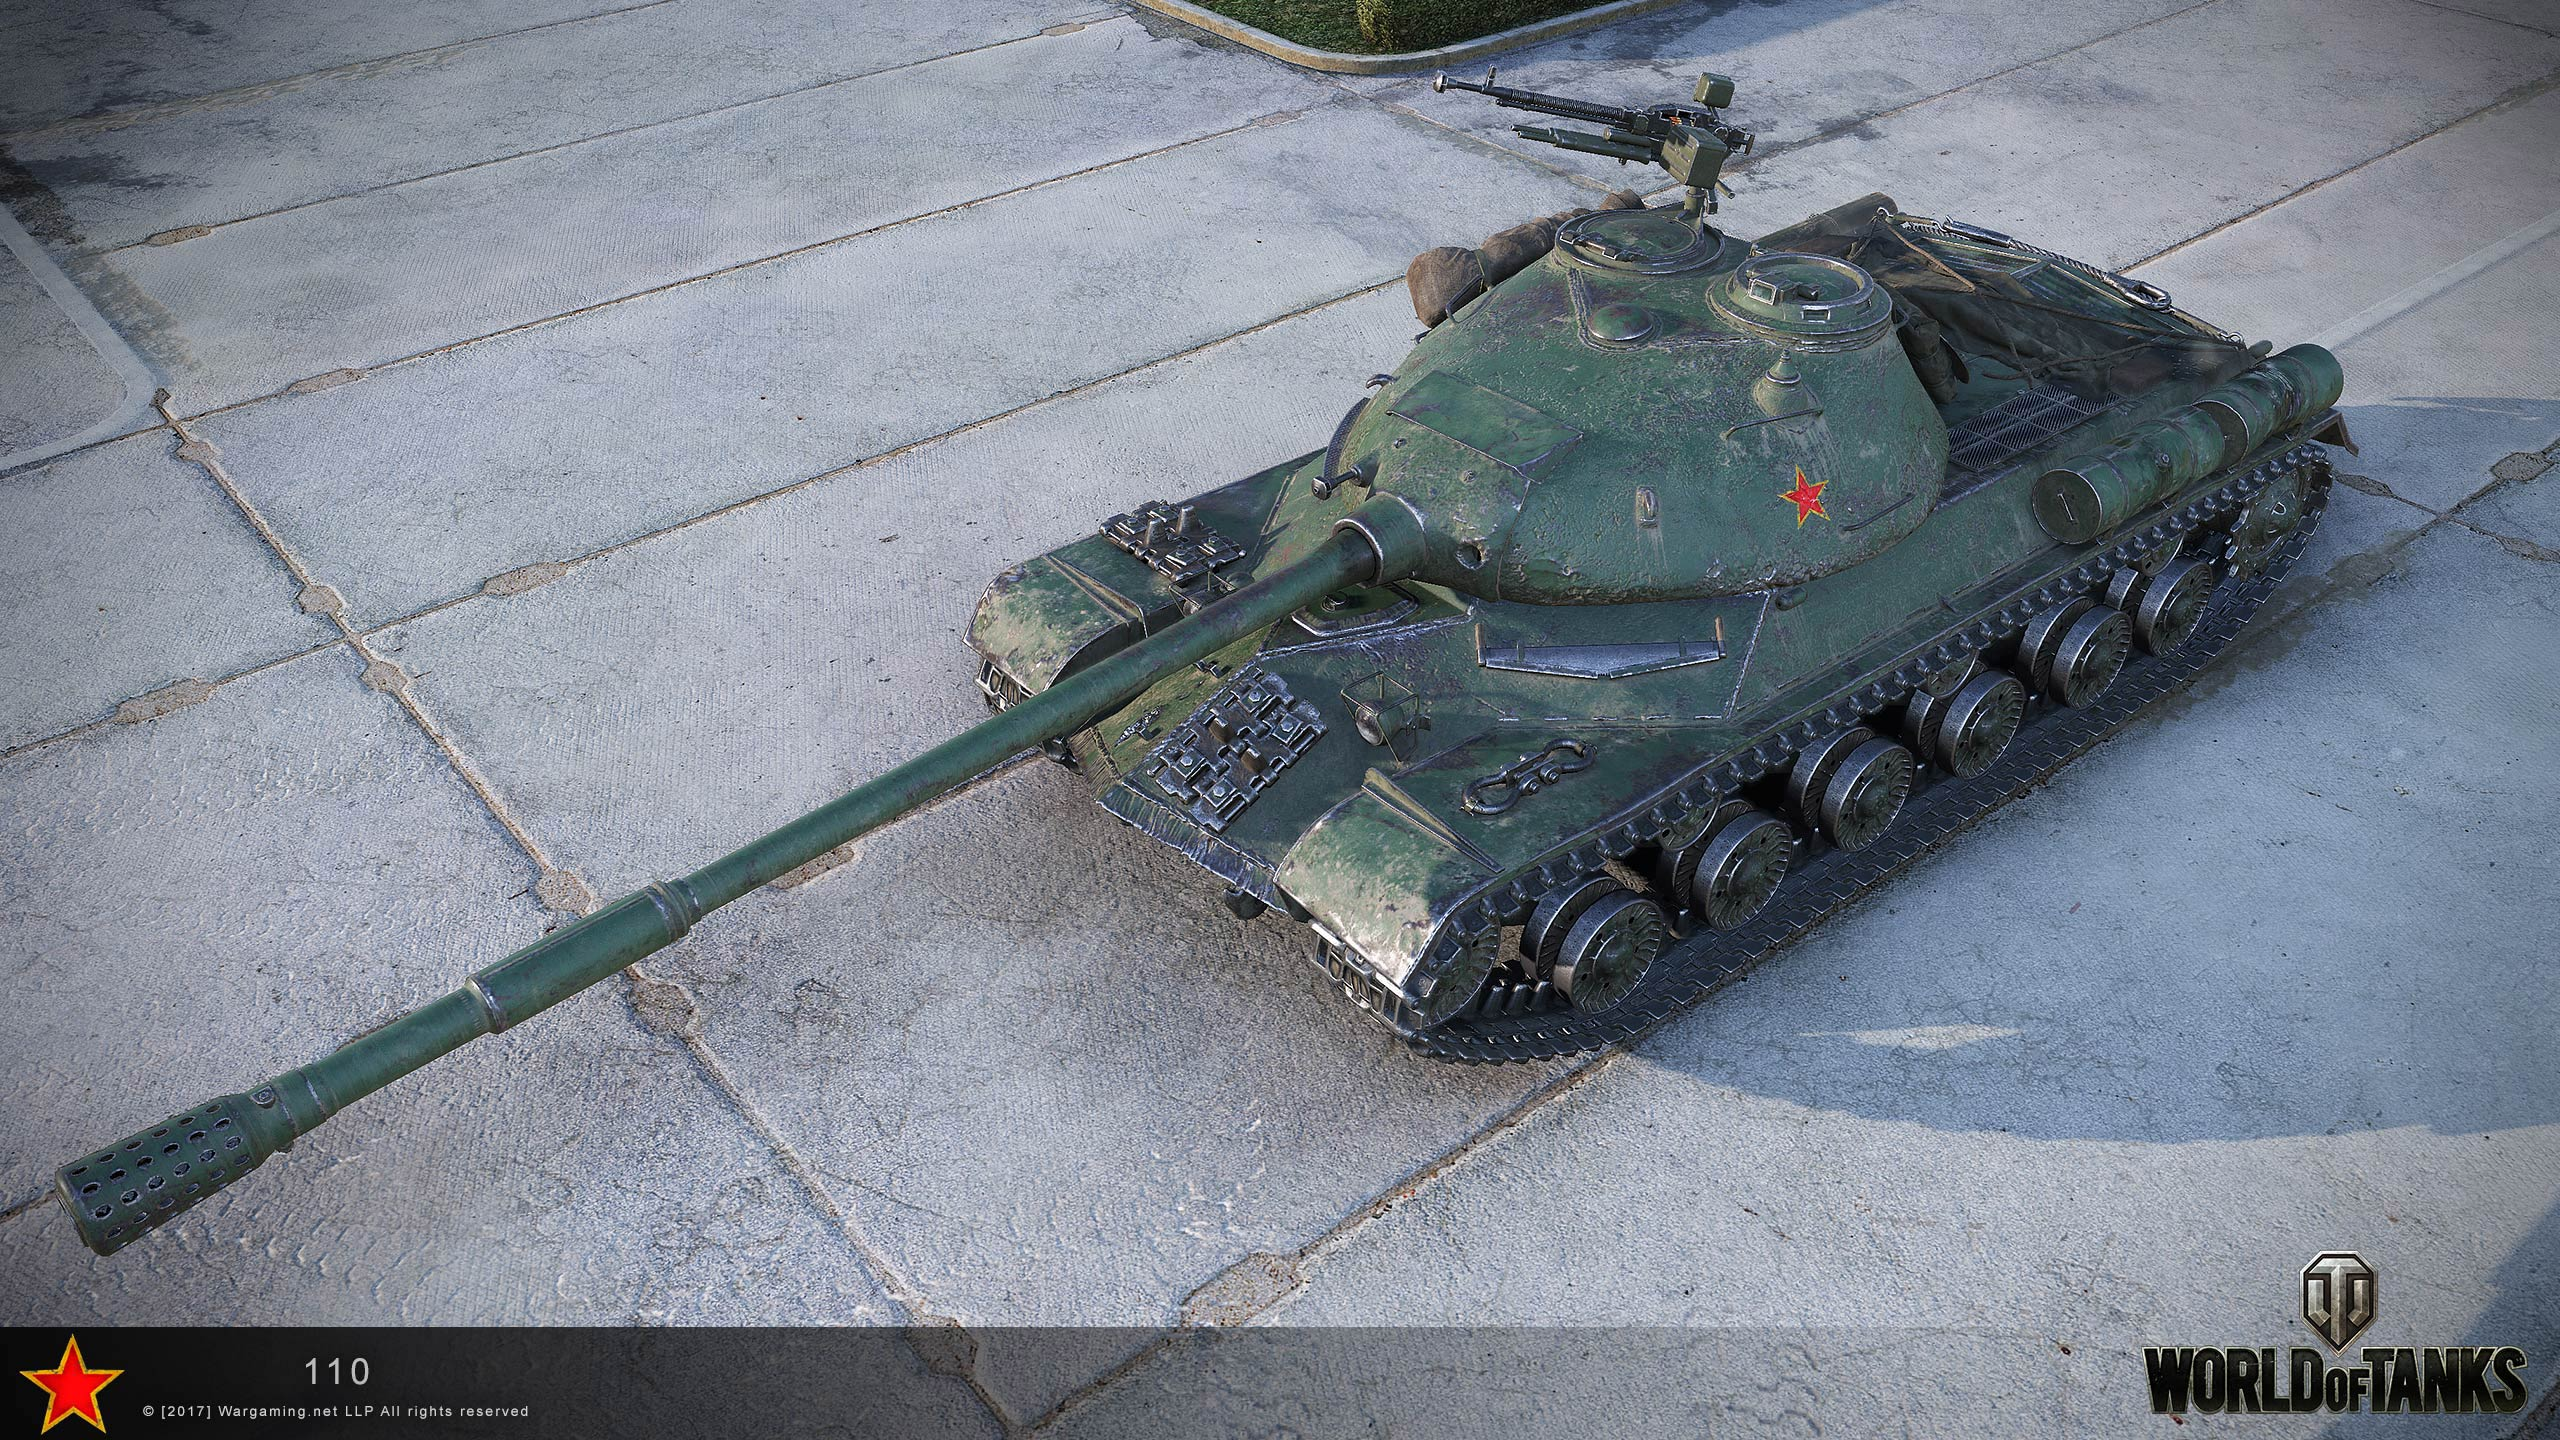 World of Tanks 9.21: Offical HD Renders